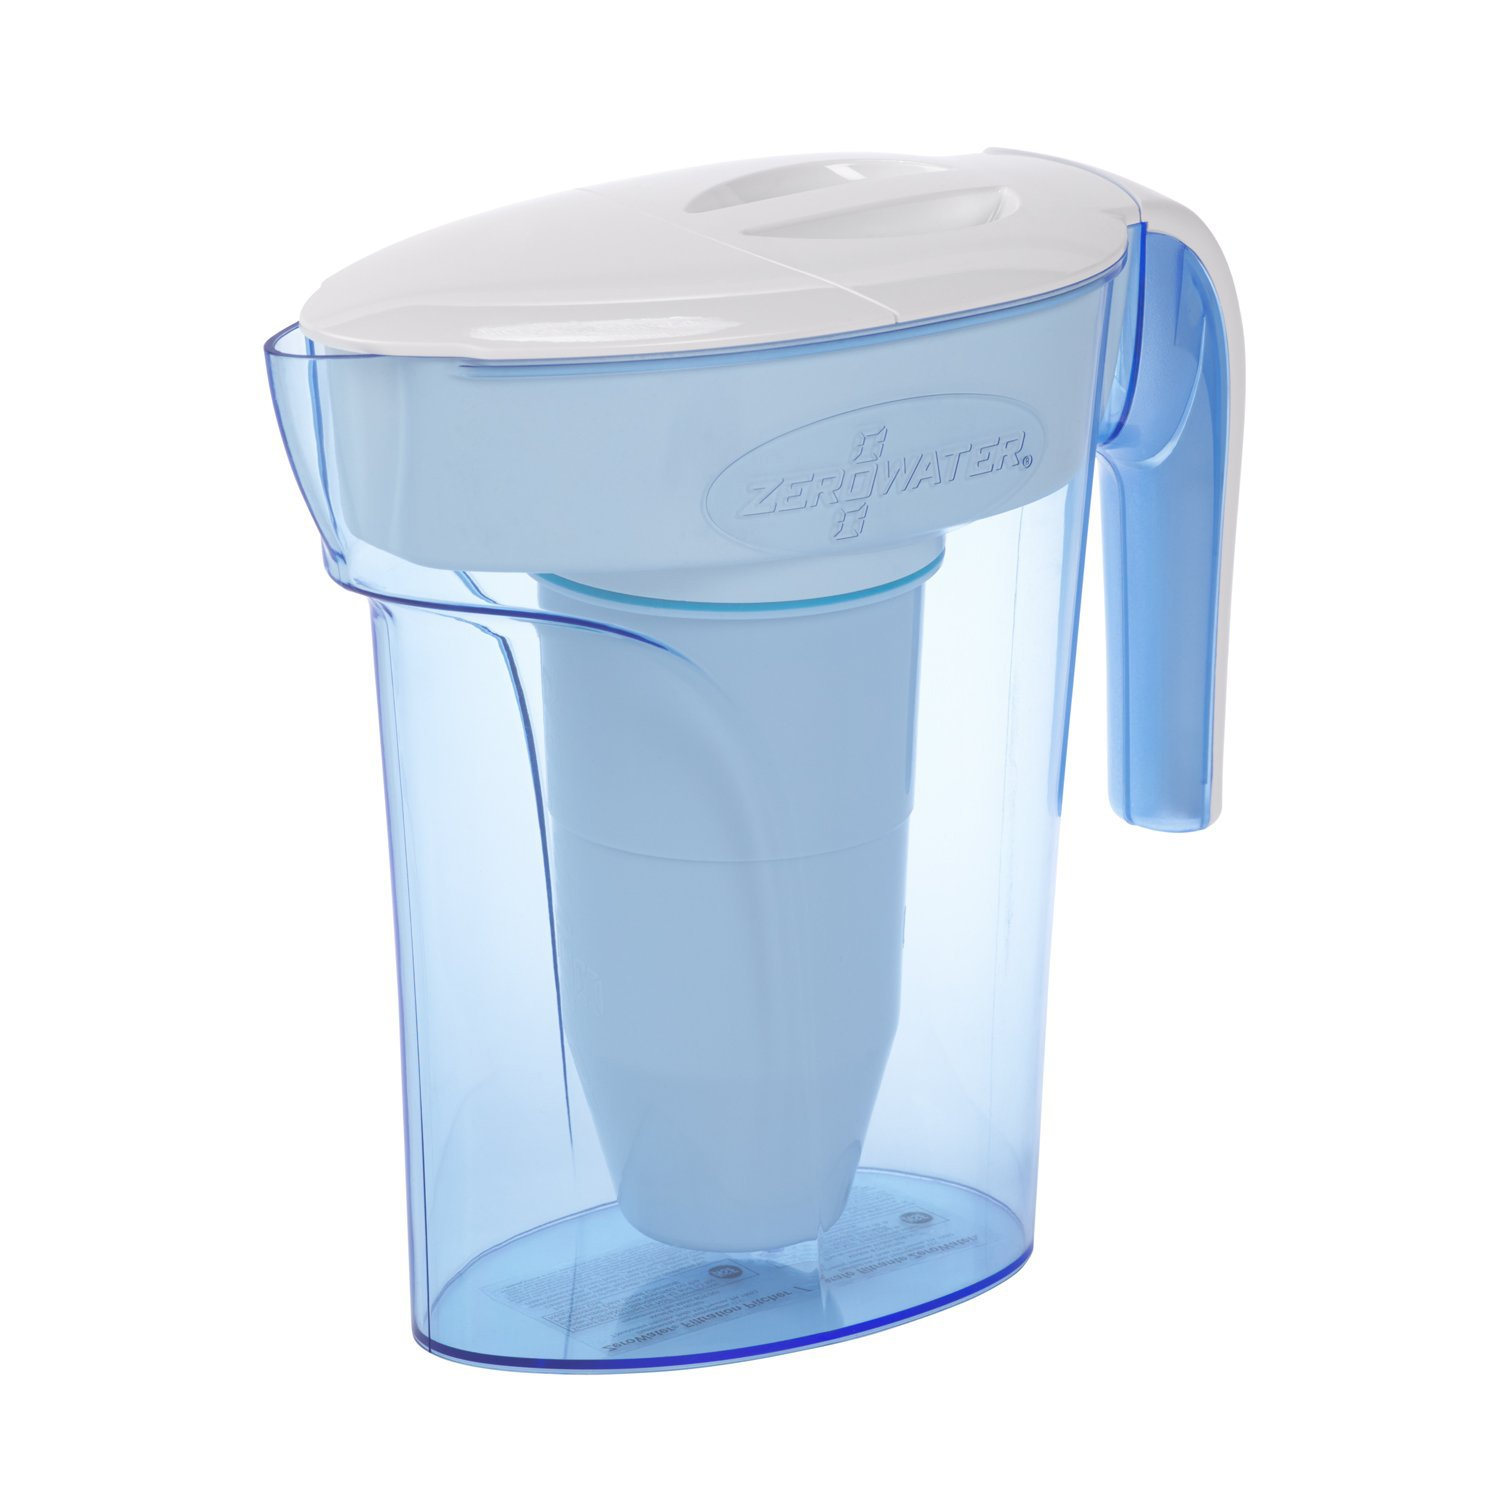 Filter Jugs From Stock - Our new range of filter jugs cheaper to run then a Britta and cleaner water. More Info